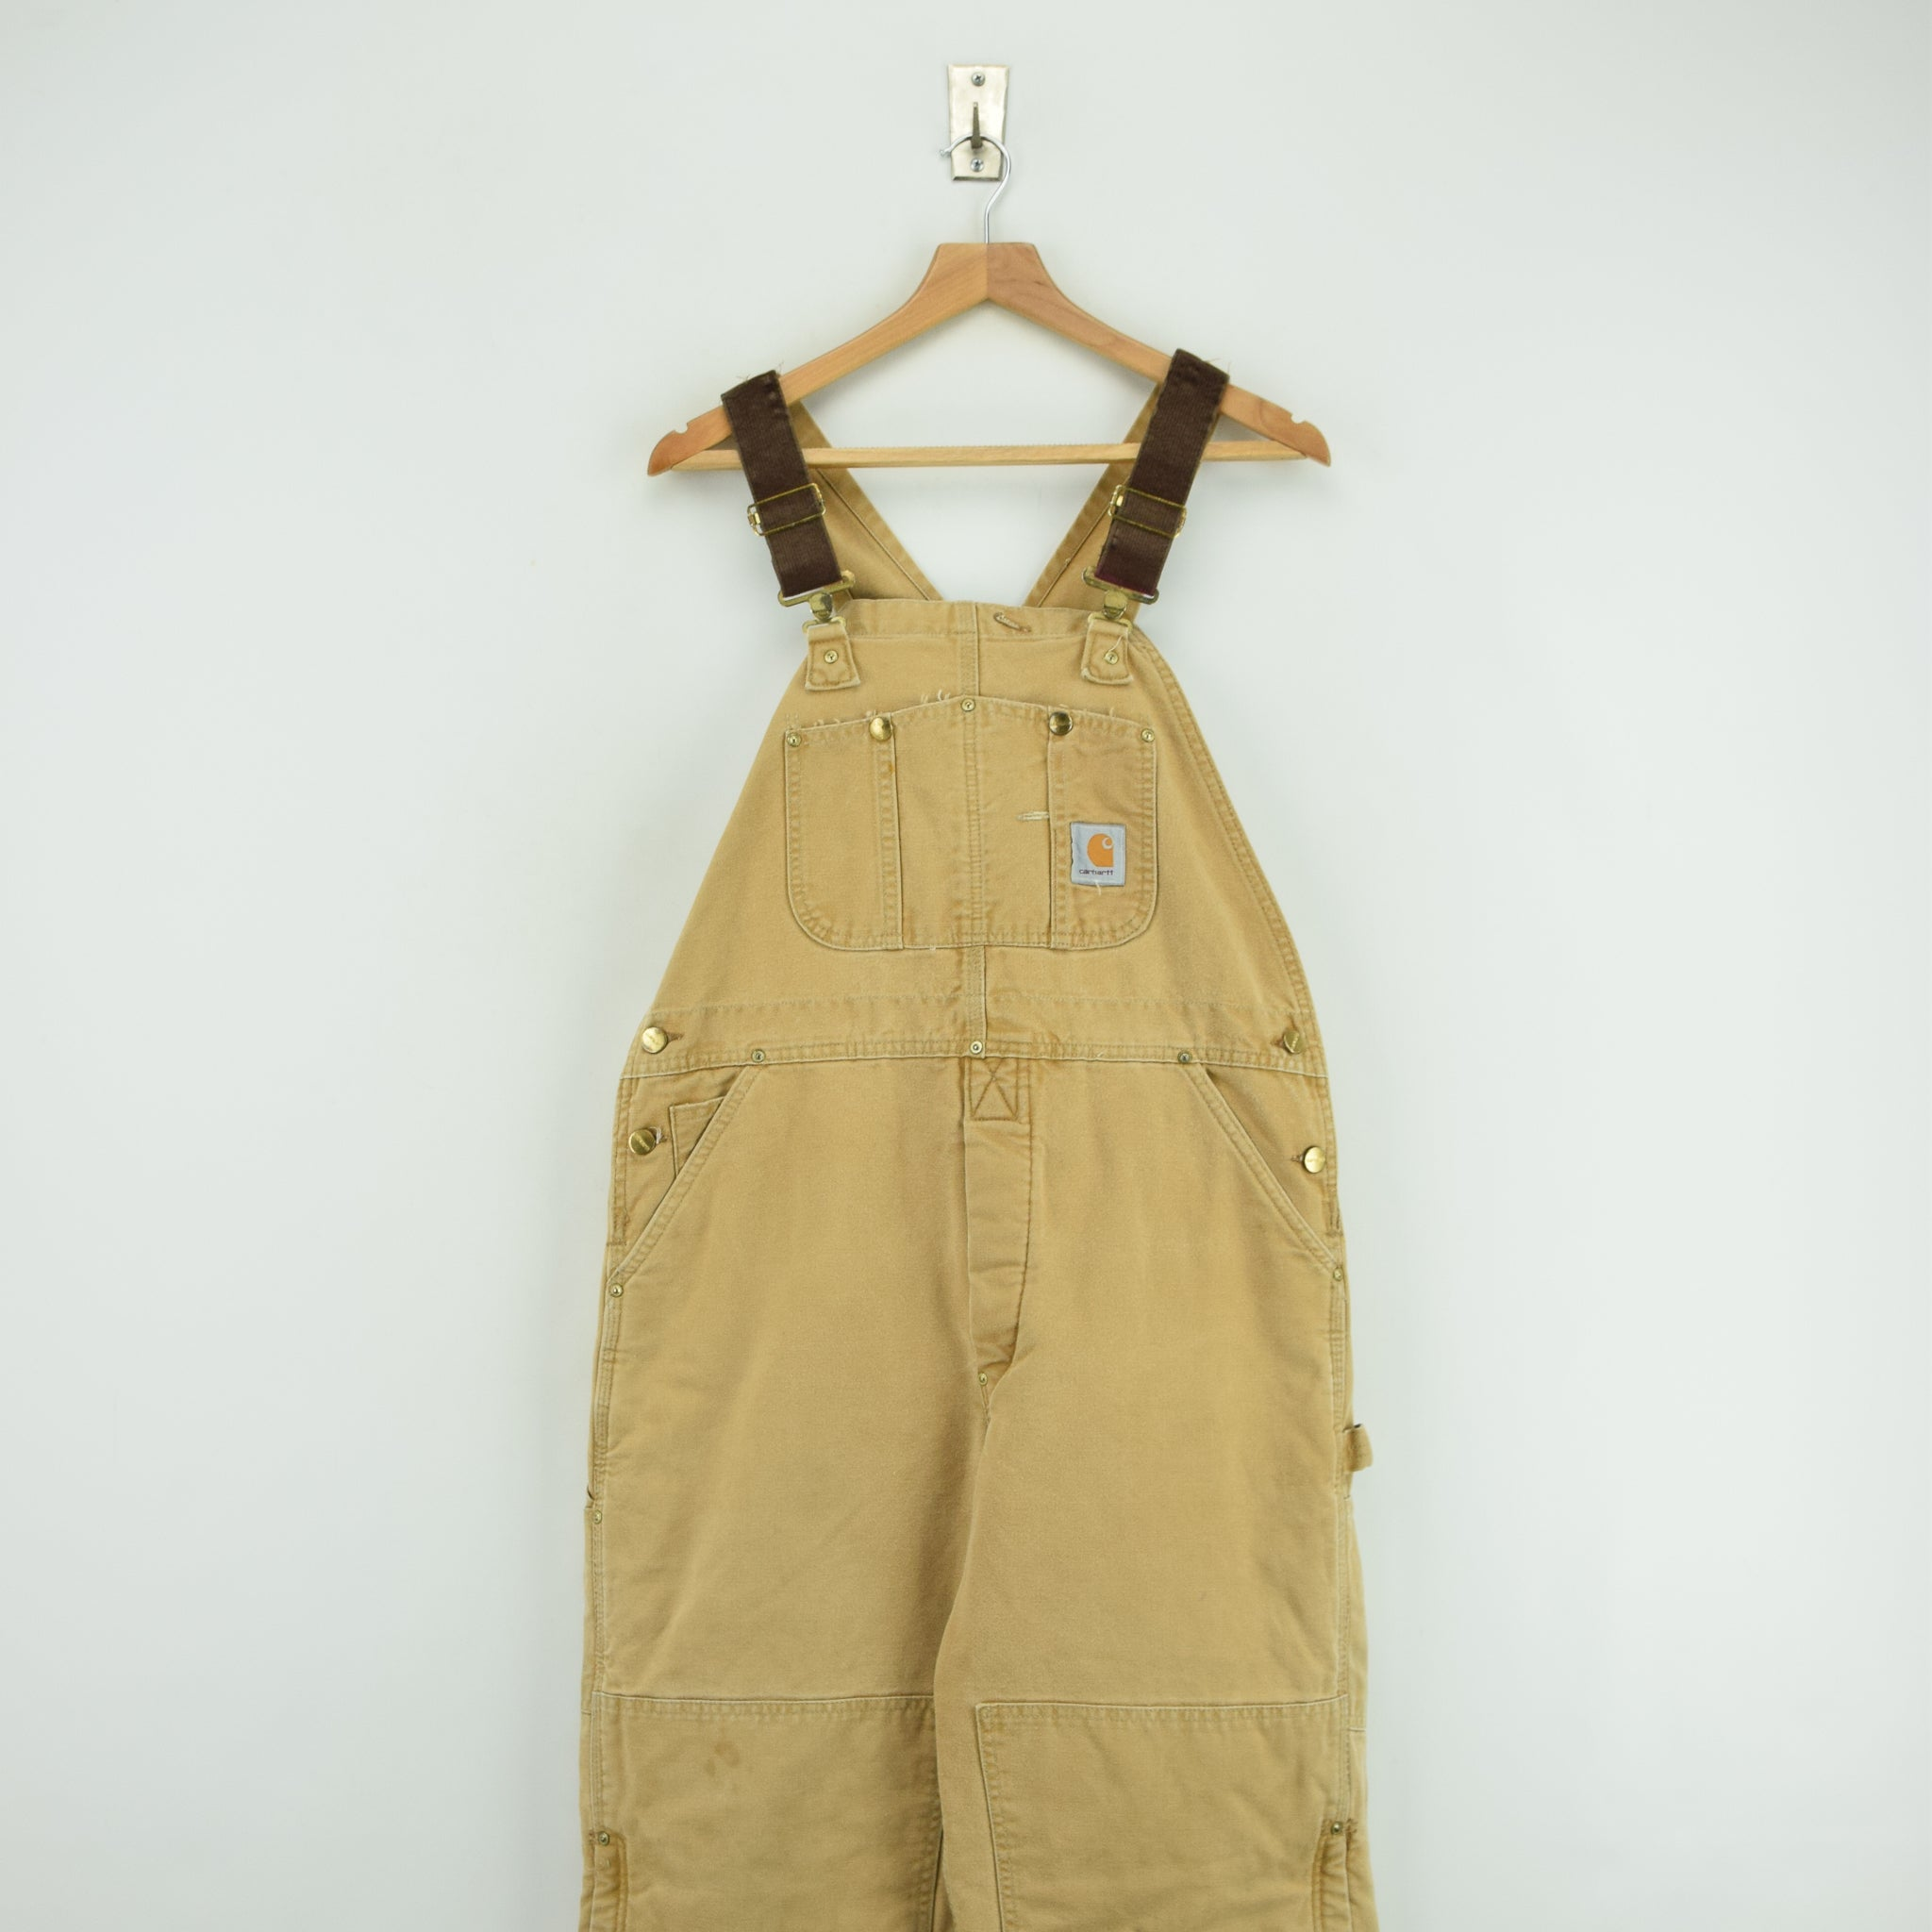 Vintage Carhartt Work Dungarees Tan Brown Duck Canvas Bib Overall Quilt Lined M FRONT